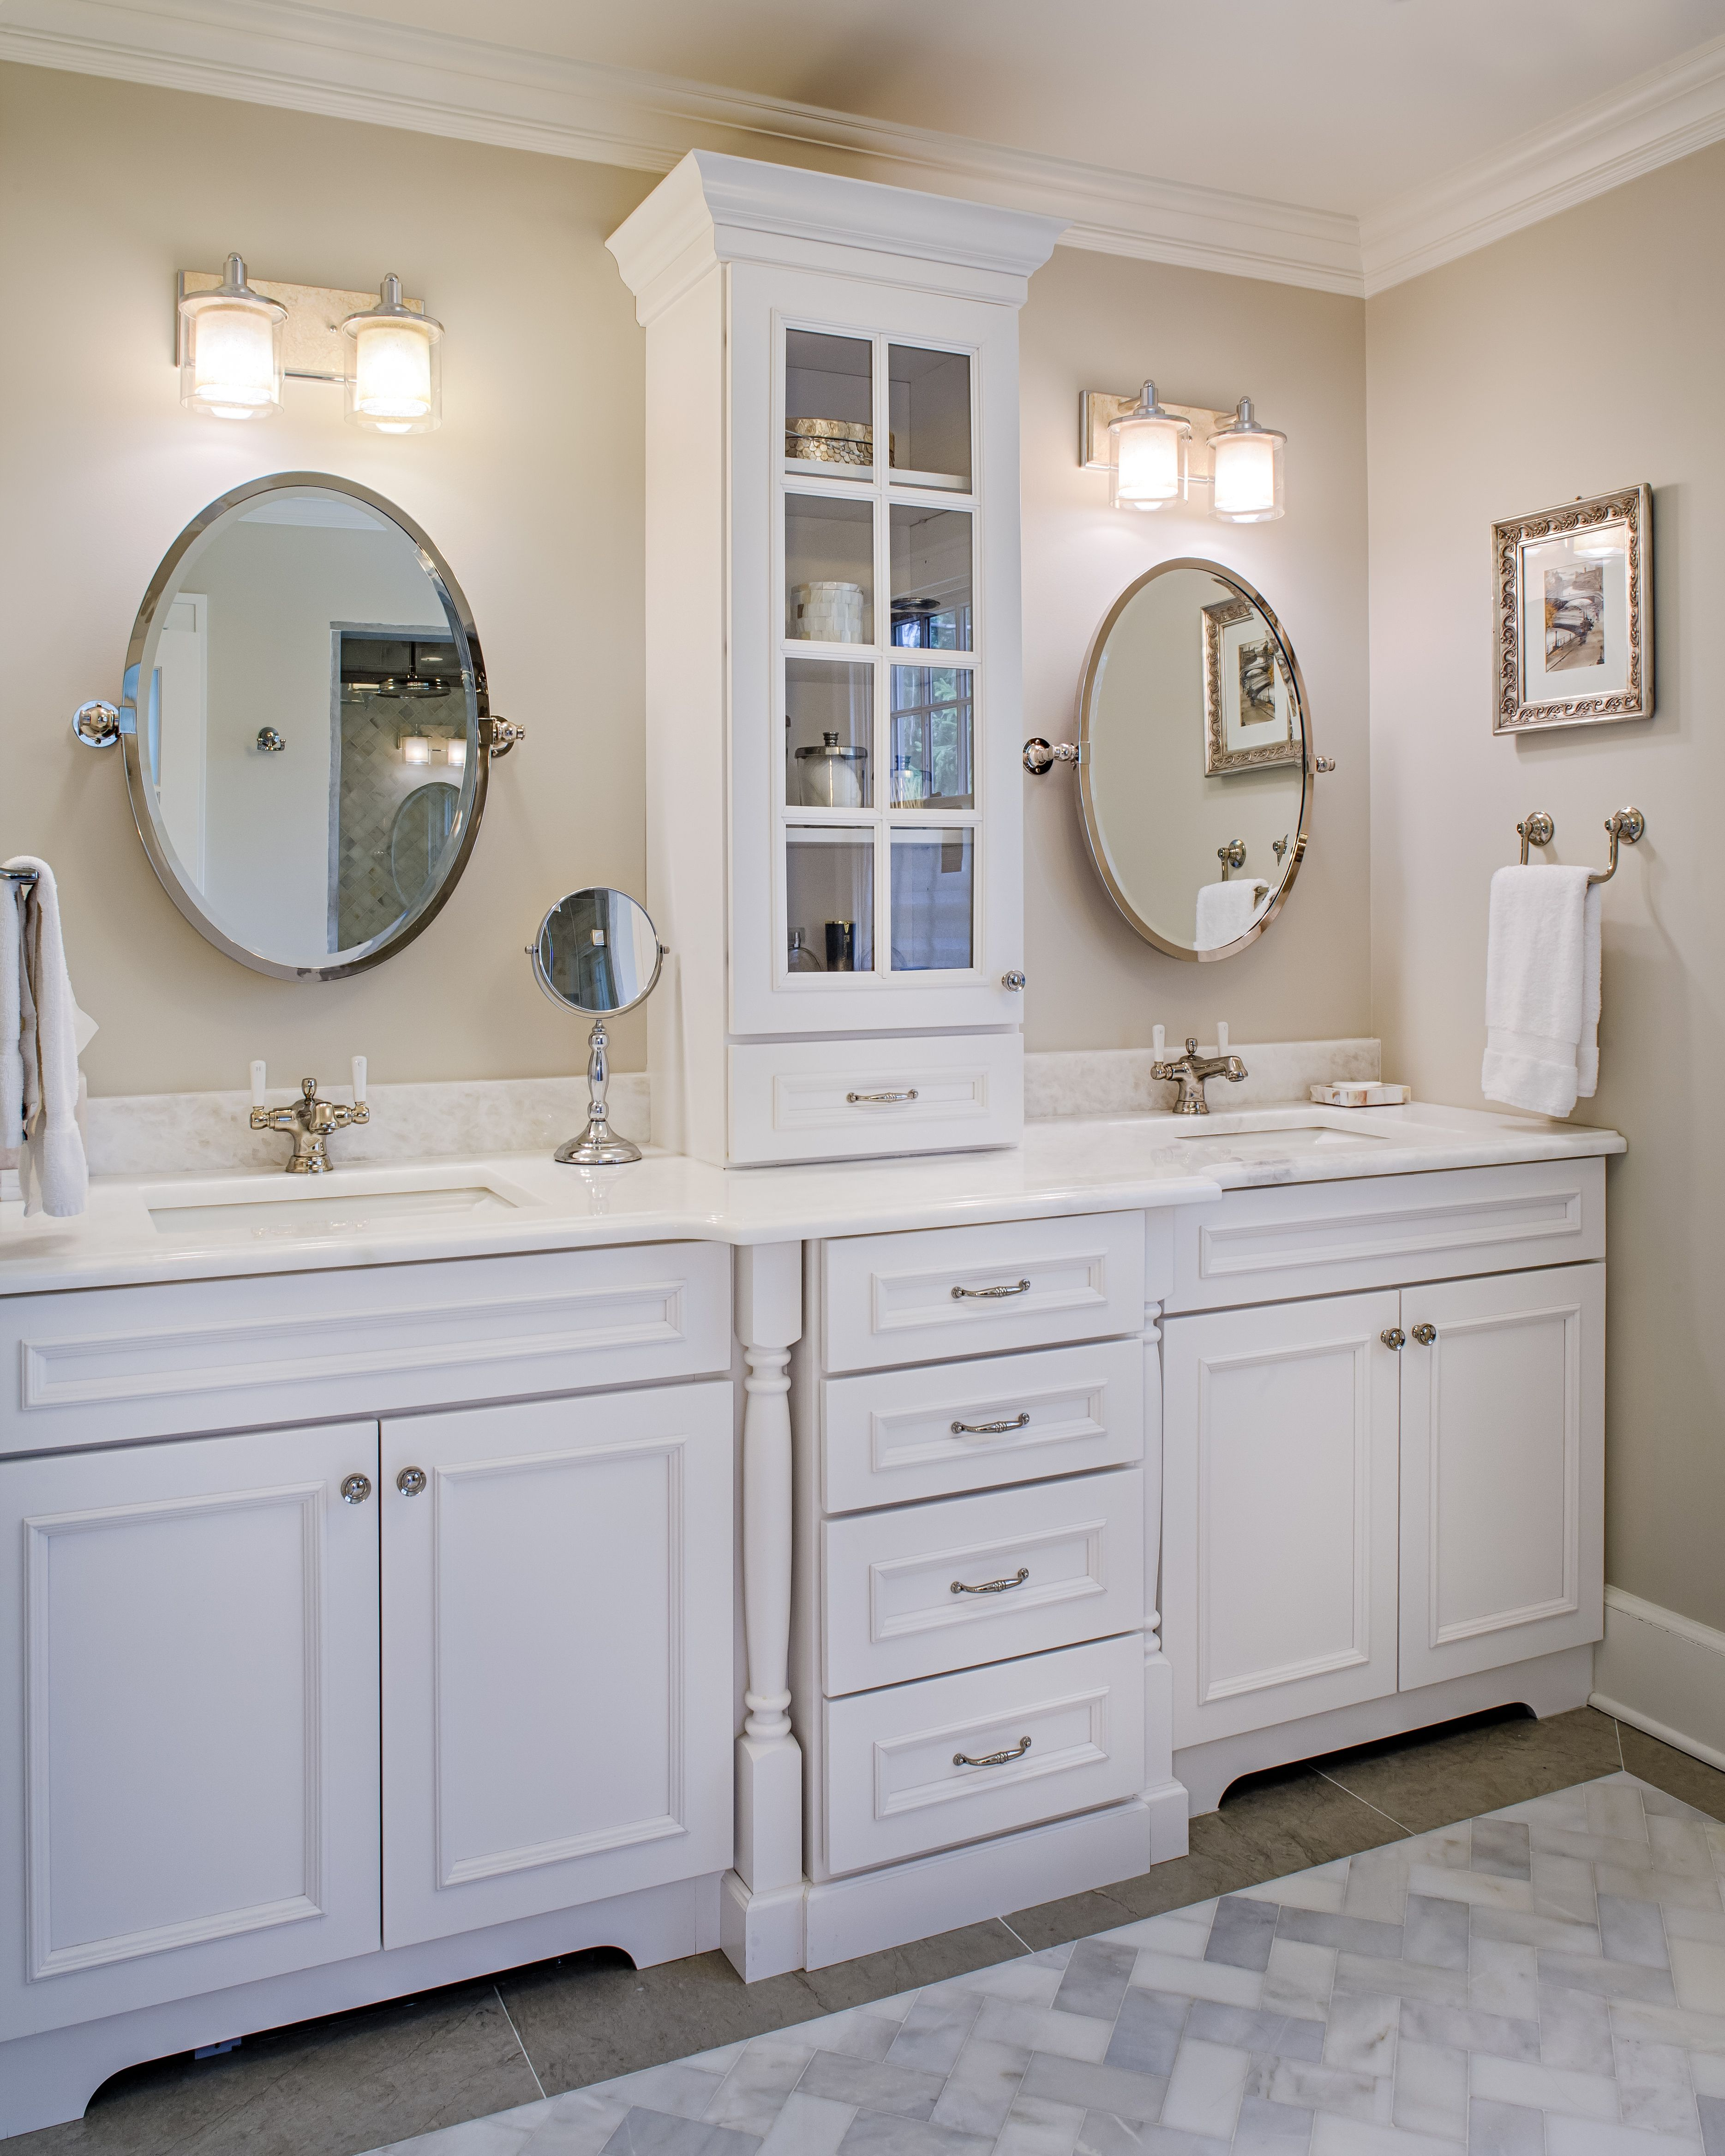 White Bathroom Vanity Ideas Master Bathroom Renovation With Tower And Double Vanity